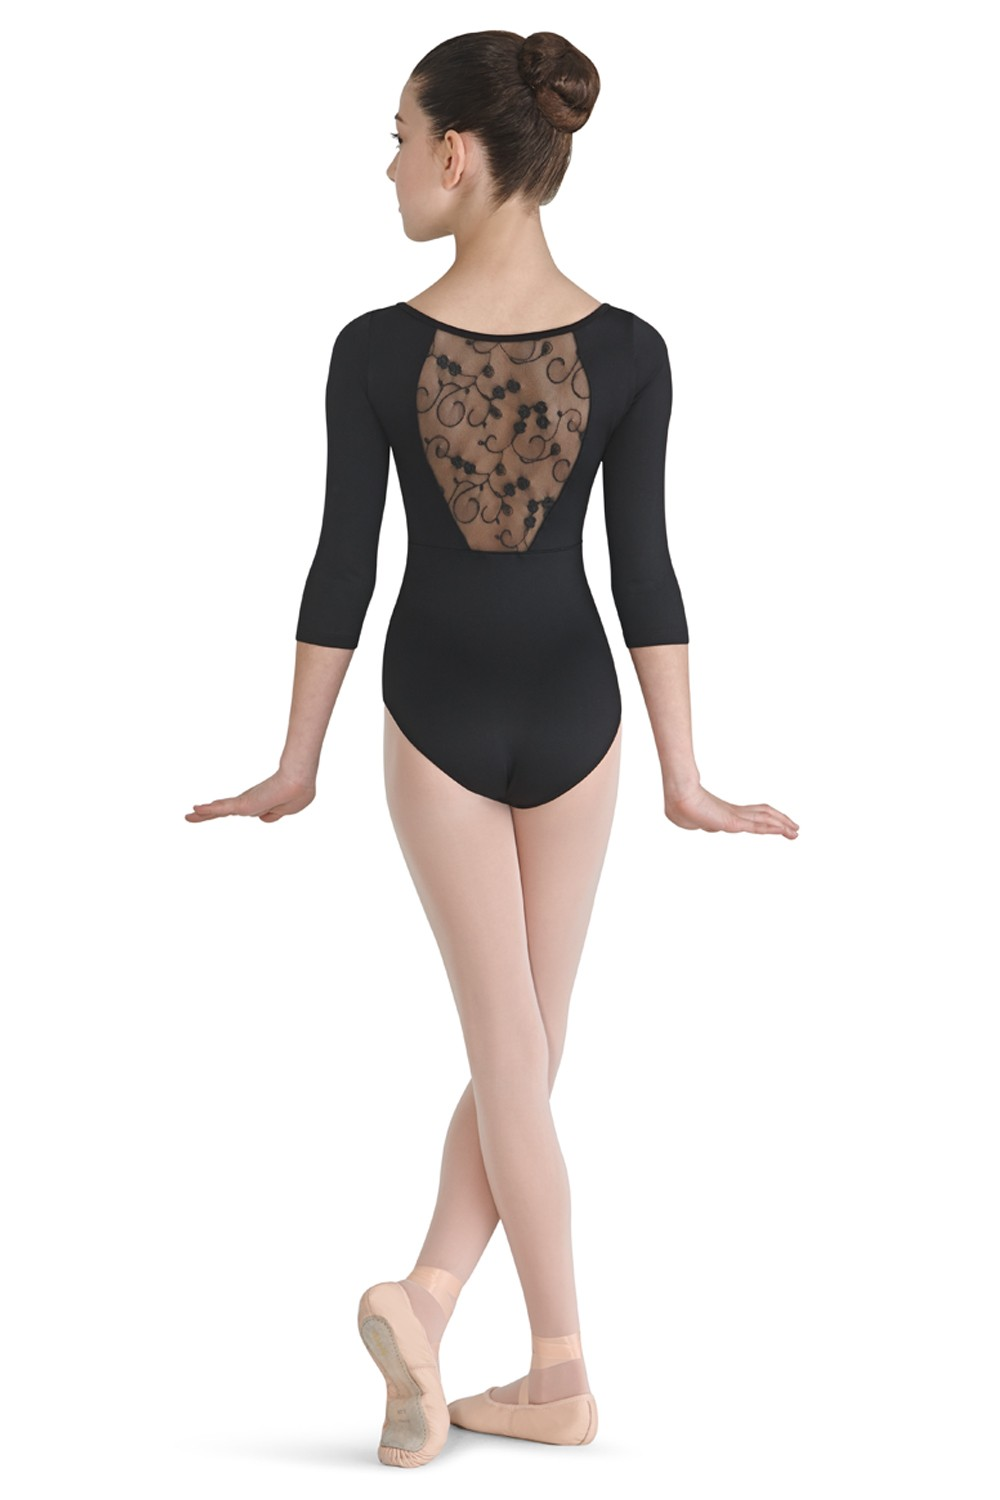 Lierre Children's Dance Leotards